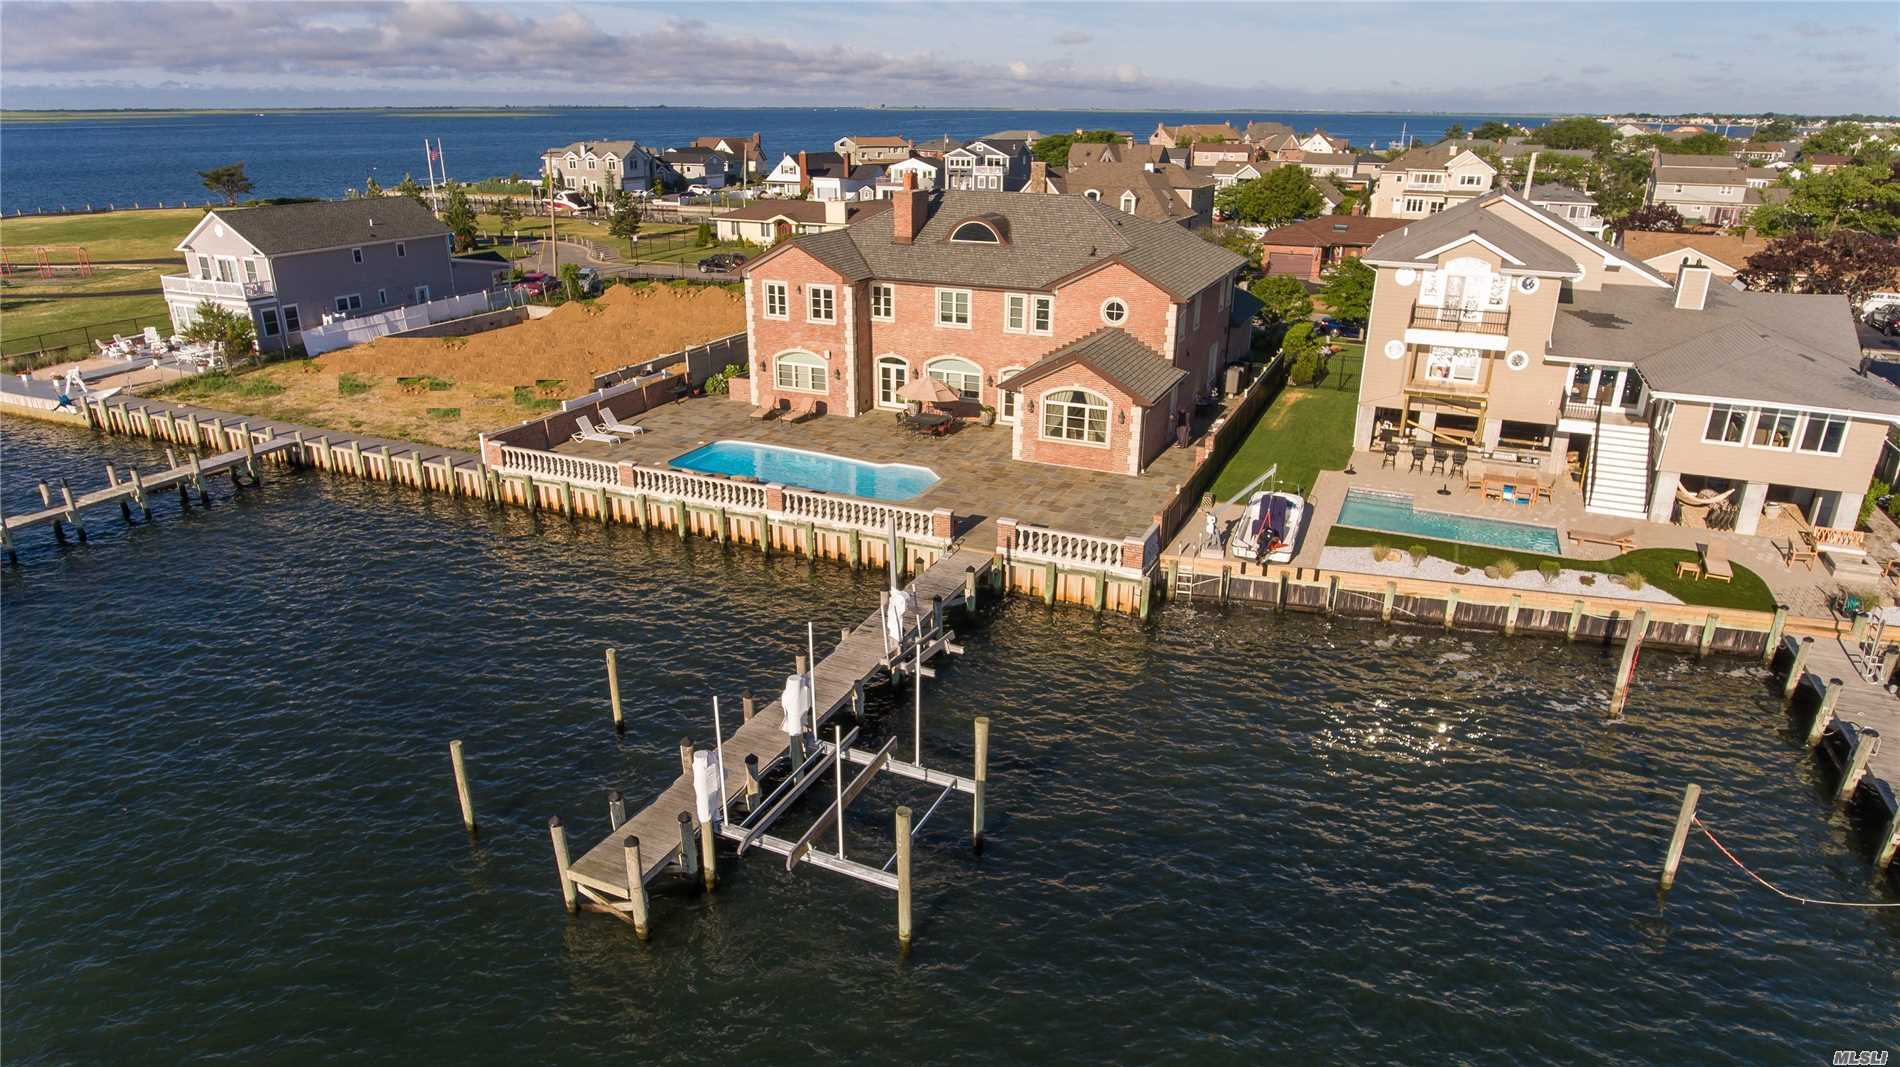 Majestic Brick Bayfront Home Built In 2008 With Every Amenity Known To Man. No Expense Spared & Only The Finest Materials Used. Savor The Beautiful Bayviews & Store Your Boat & Jet Ski Safely On The Lift On The 61 Foot Pier Then Take A Dip In The Saltwater Pool. Life Is Good . . . .